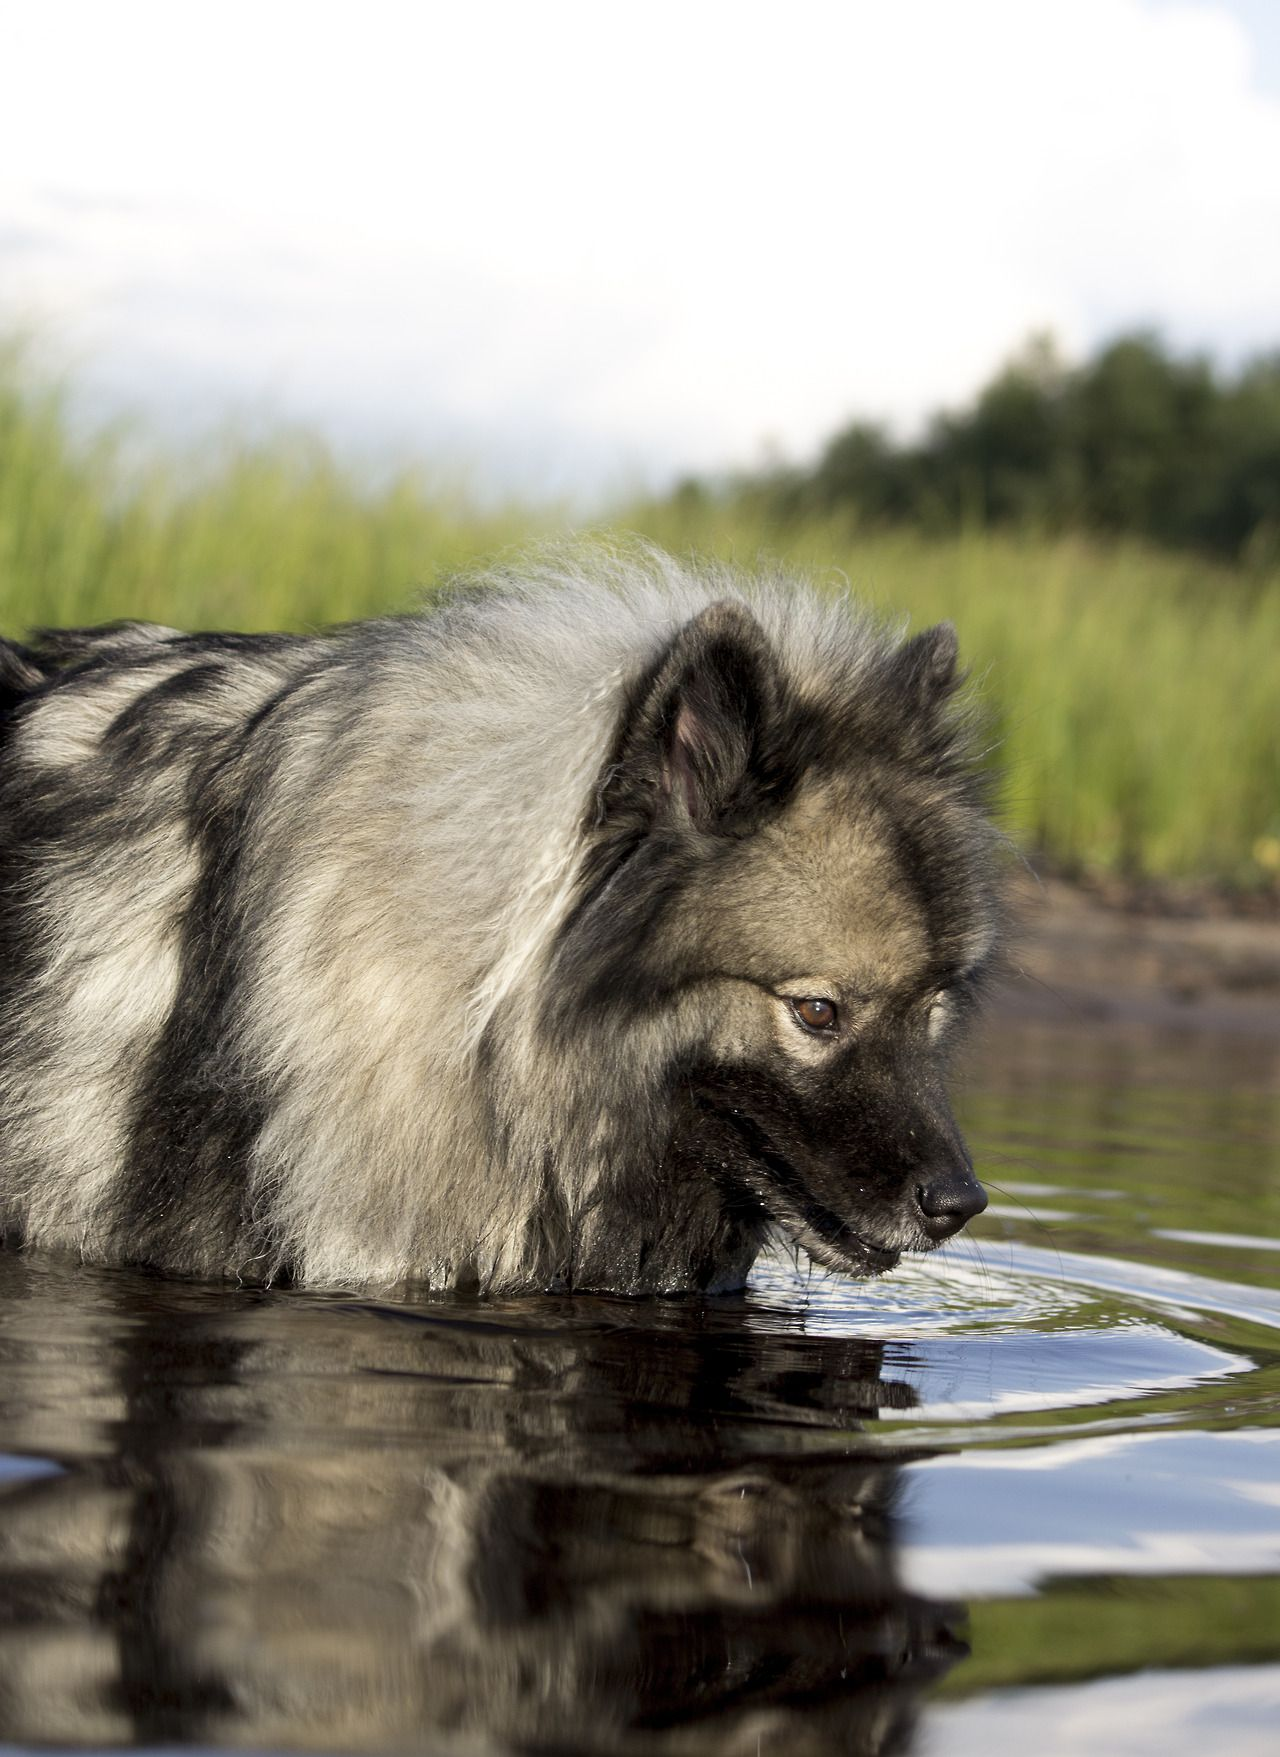 Keeshond This Reminds Me Of My Beanies When He Went Fishing With